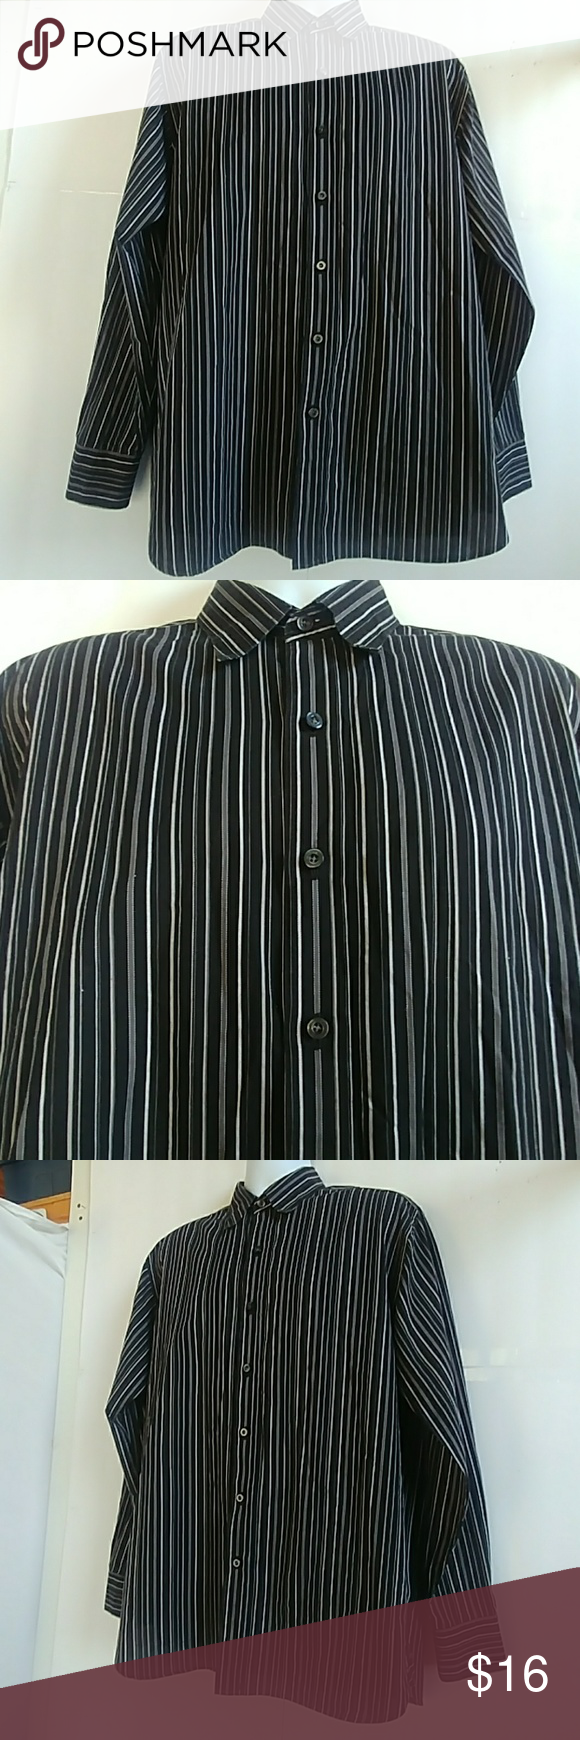 Sale Austin Reed Men S Pinstripe Dress Shirt Pinstripe Dress Pinstripe Shirt Dress